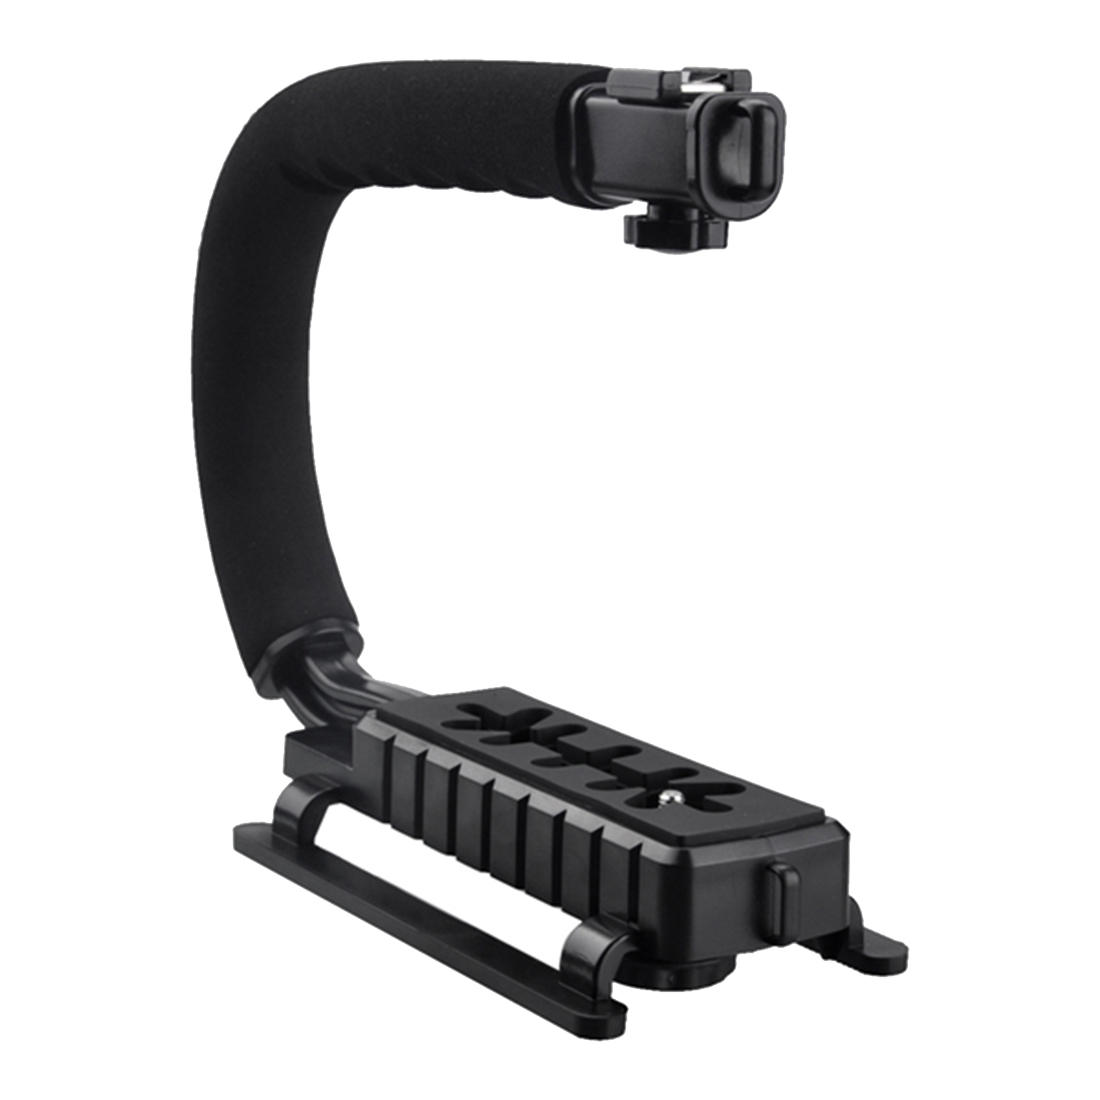 Top Deals Pro Stabilizer C-Shape Bracket Video Handheld Grip fit for Camcorder Camera DSLR